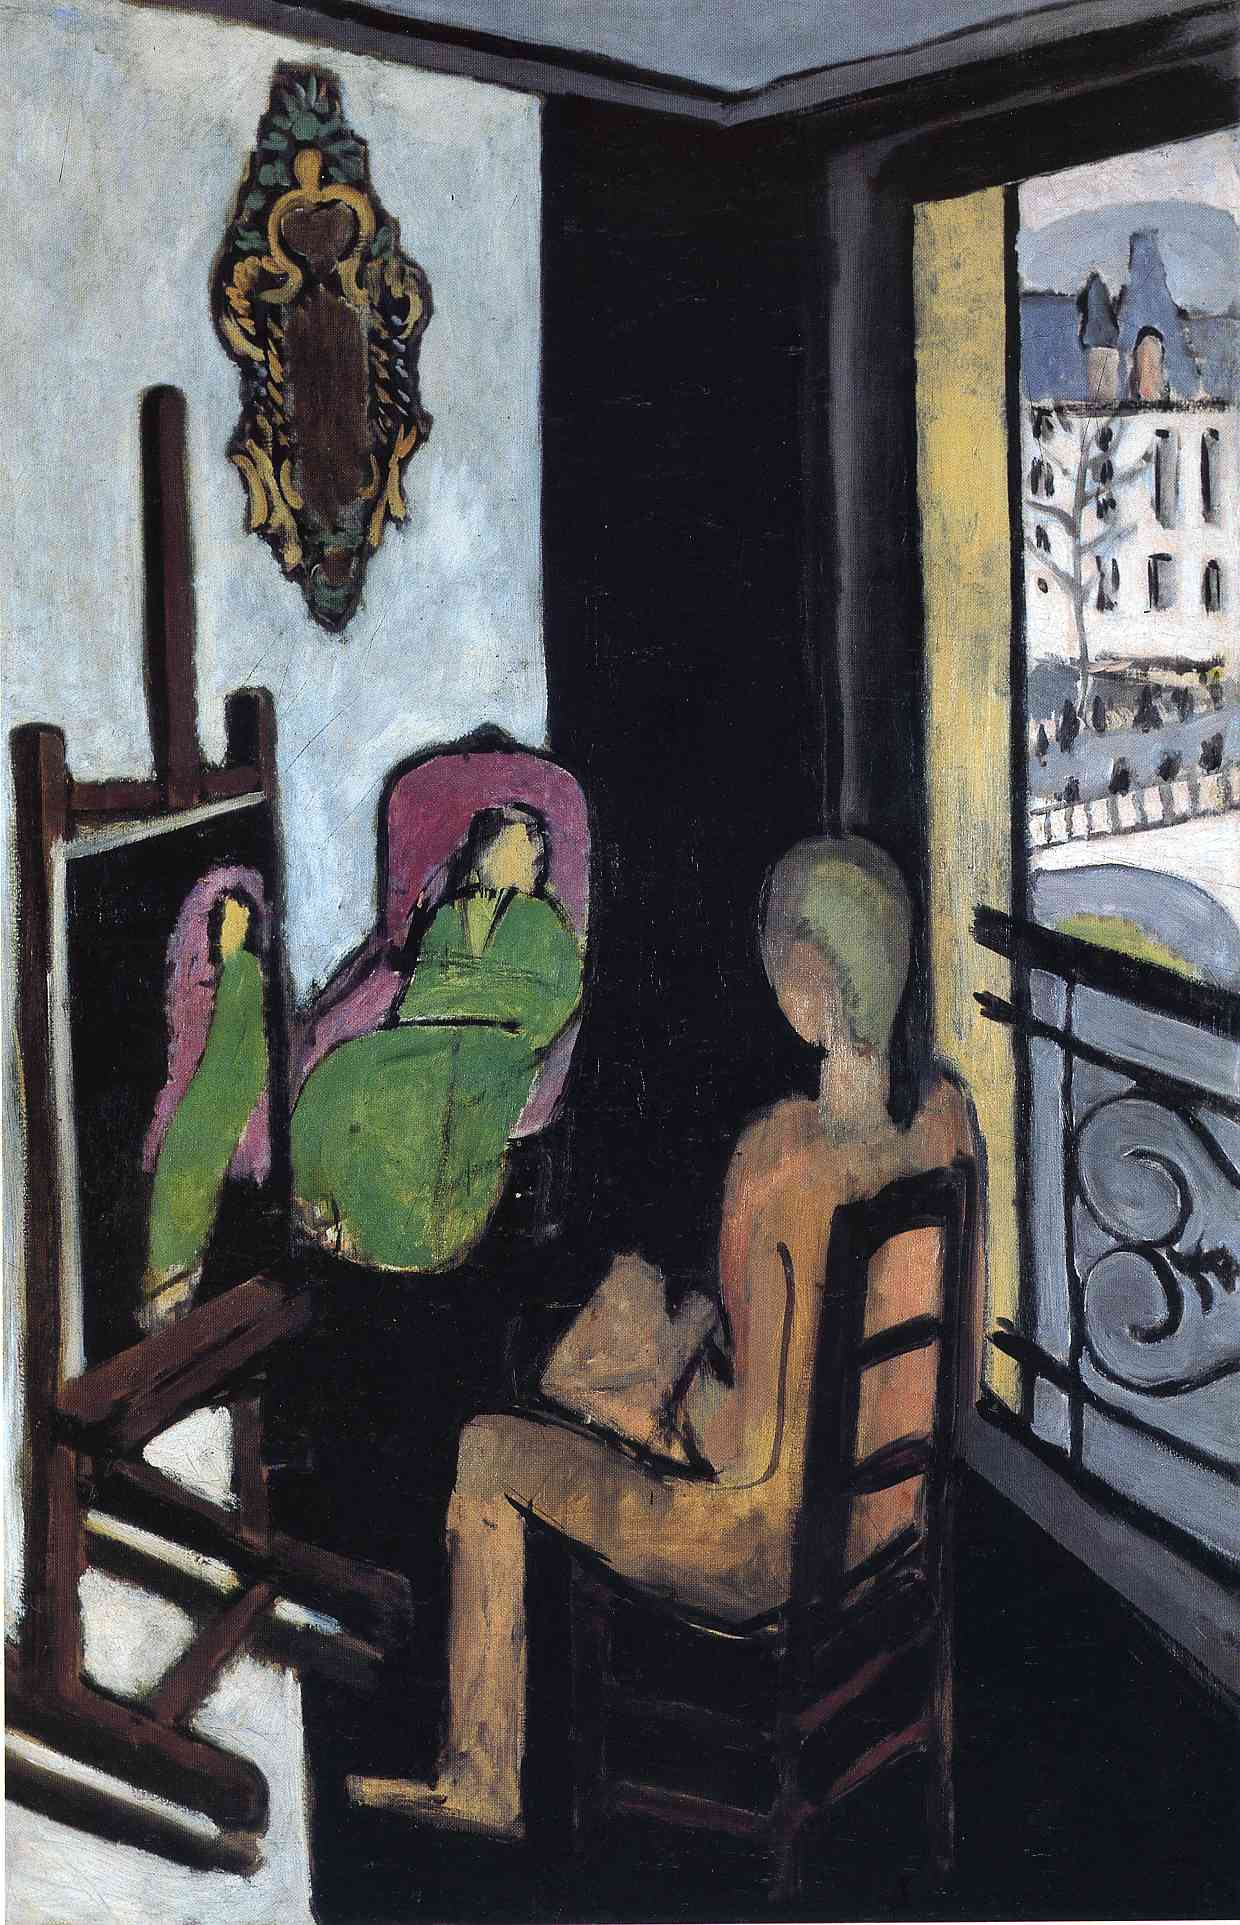 Henri Matisse - The Painter and his Model 1917